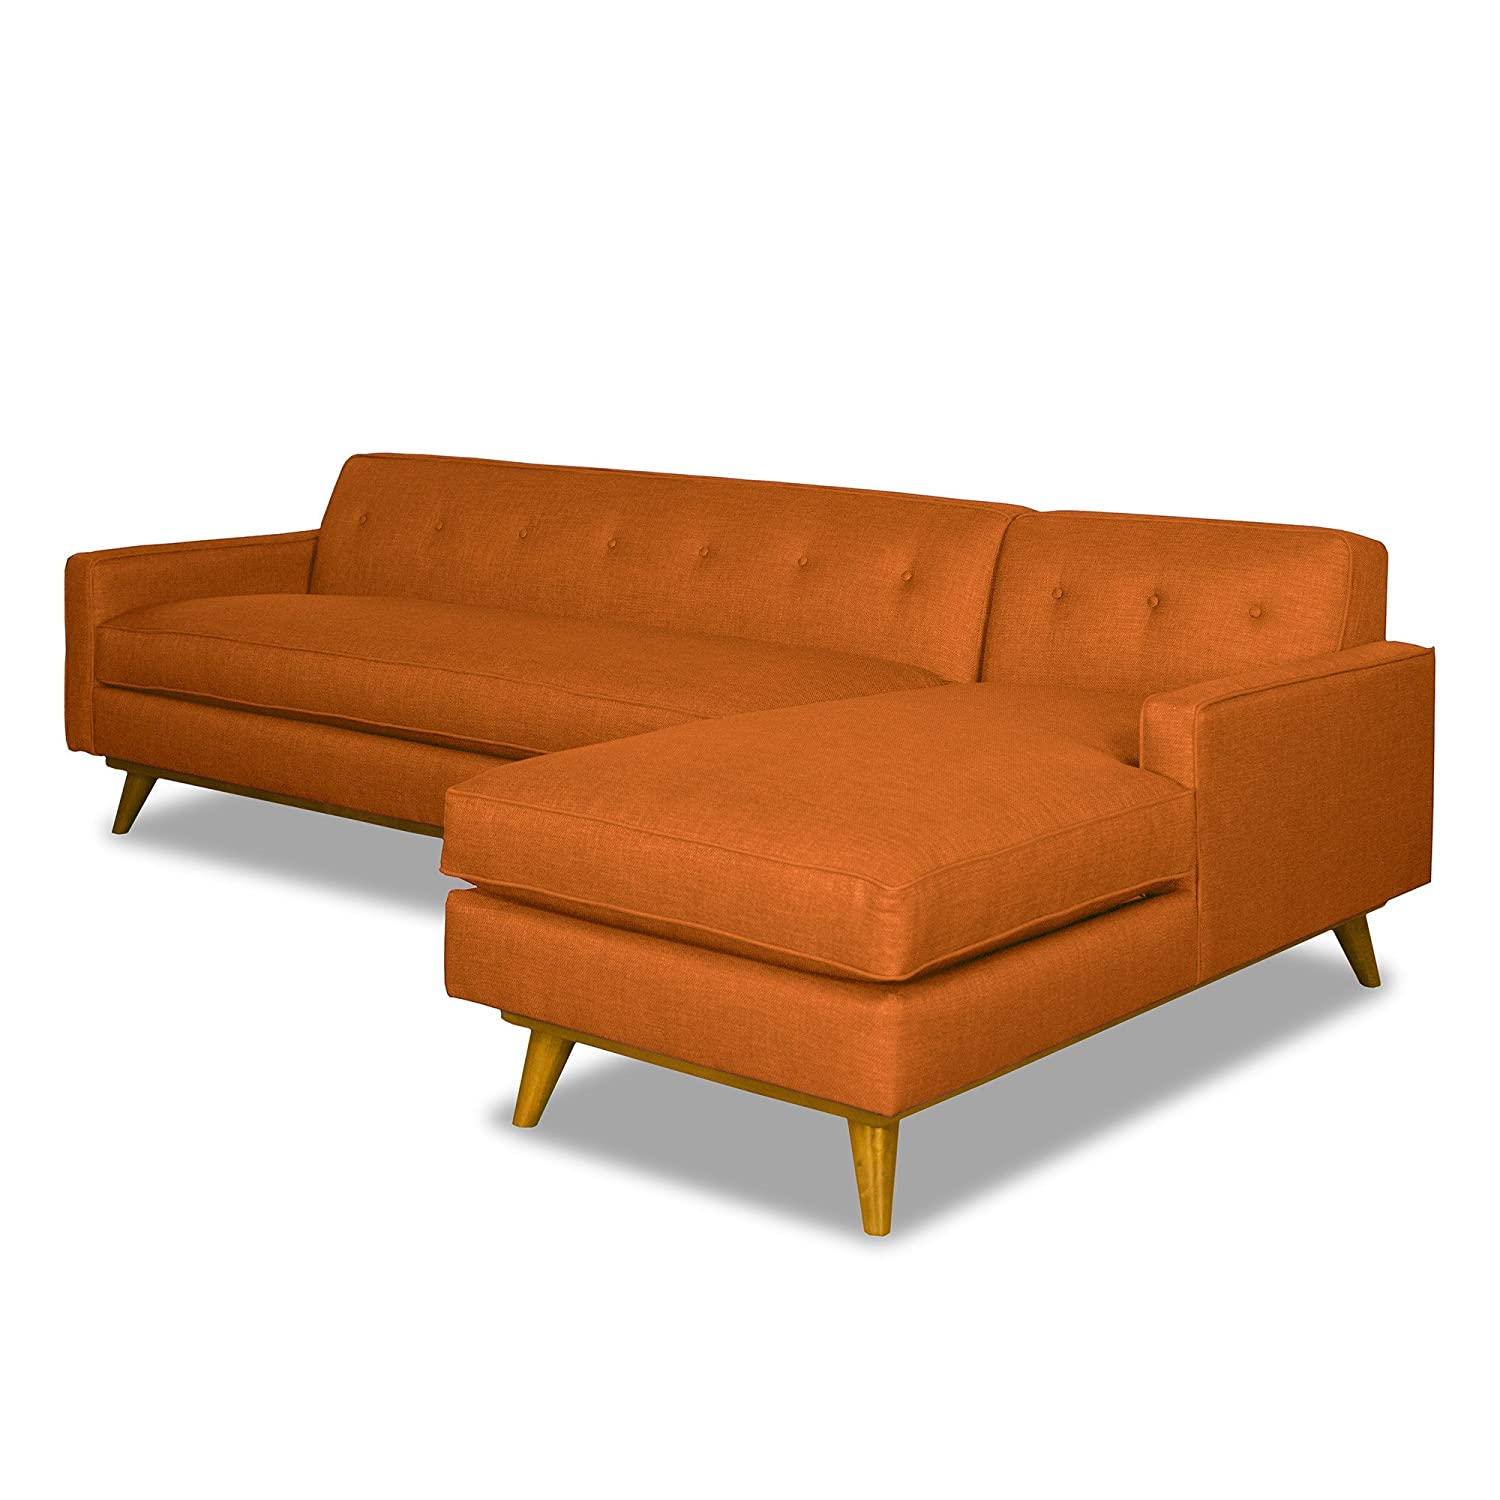 Clinton Ave 2pc Sectional - Sweet Potato